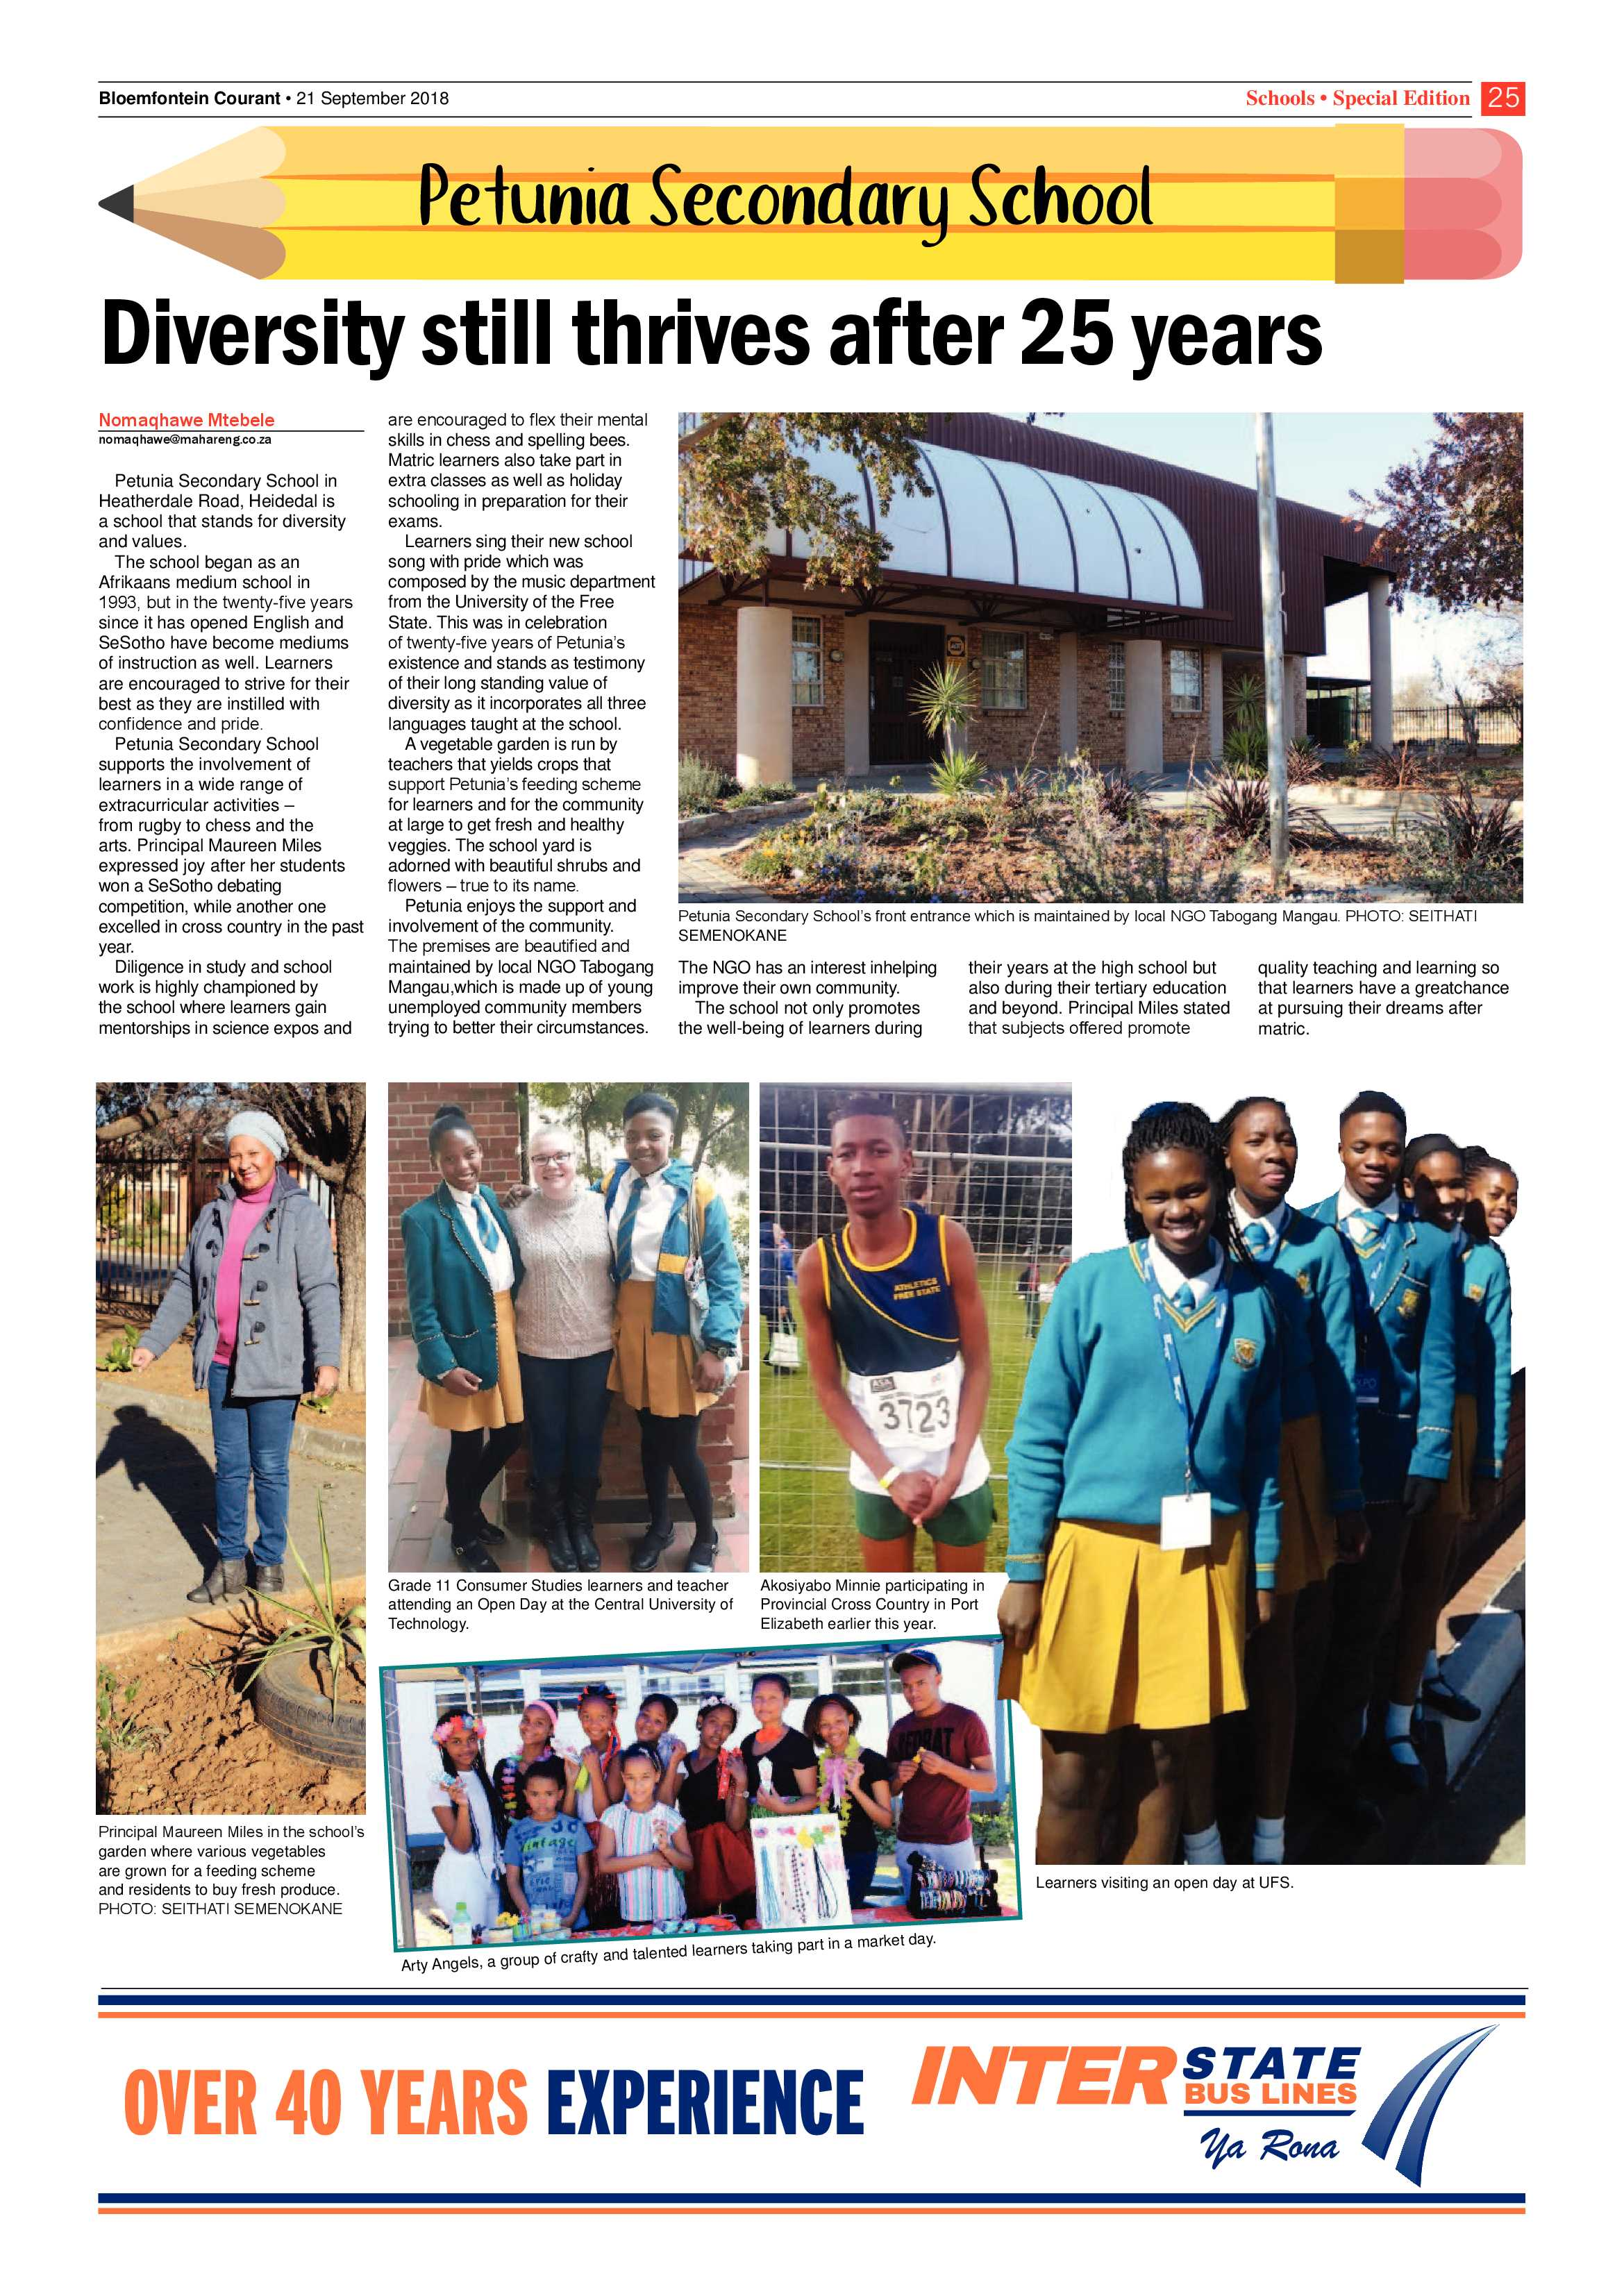 courant-schools-edition-20-september-2018-epapers-page-23